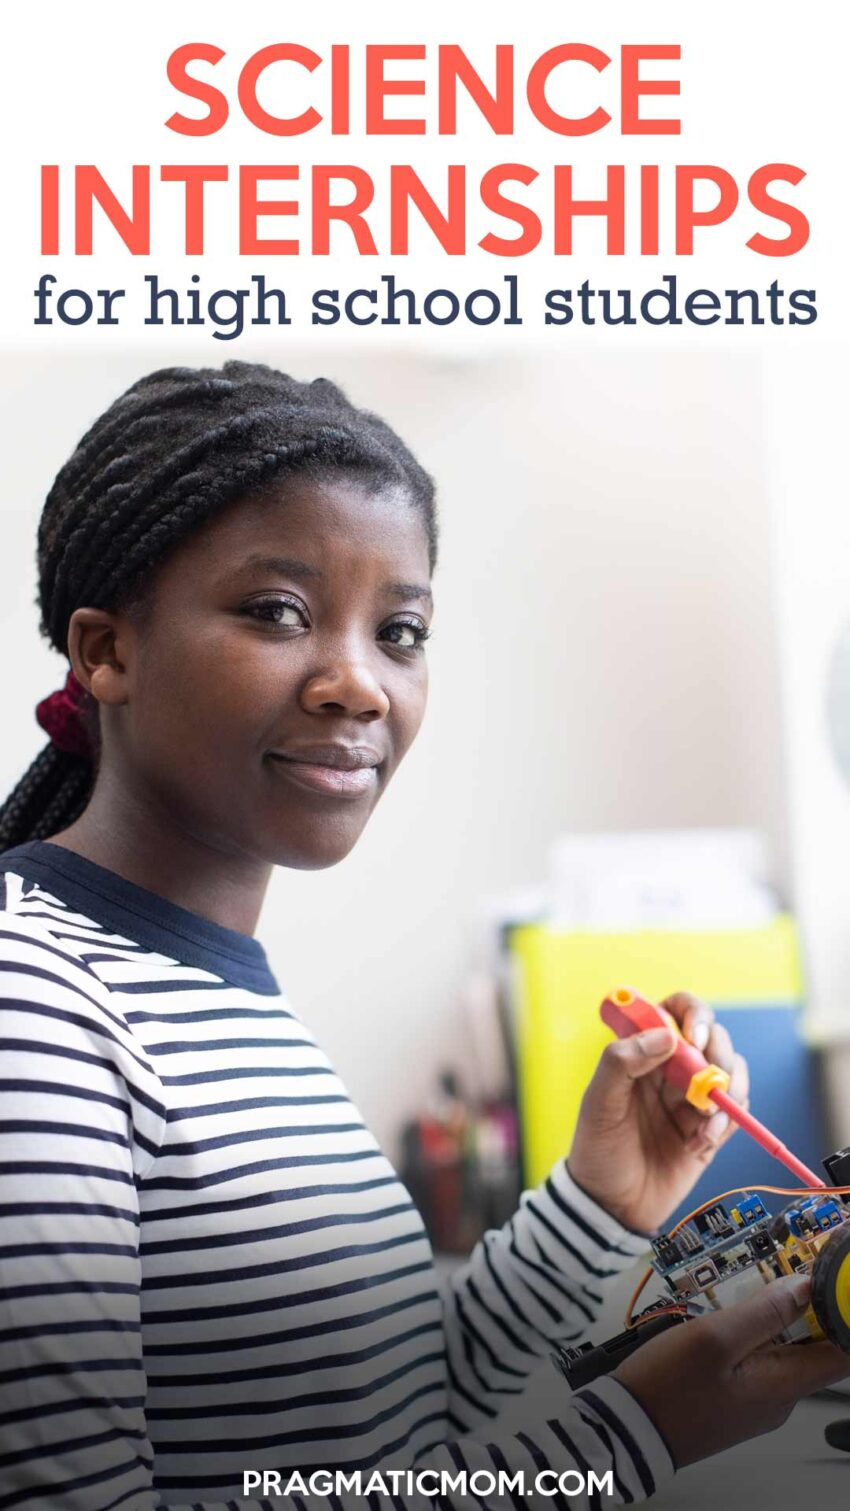 Science Internships for High School Students